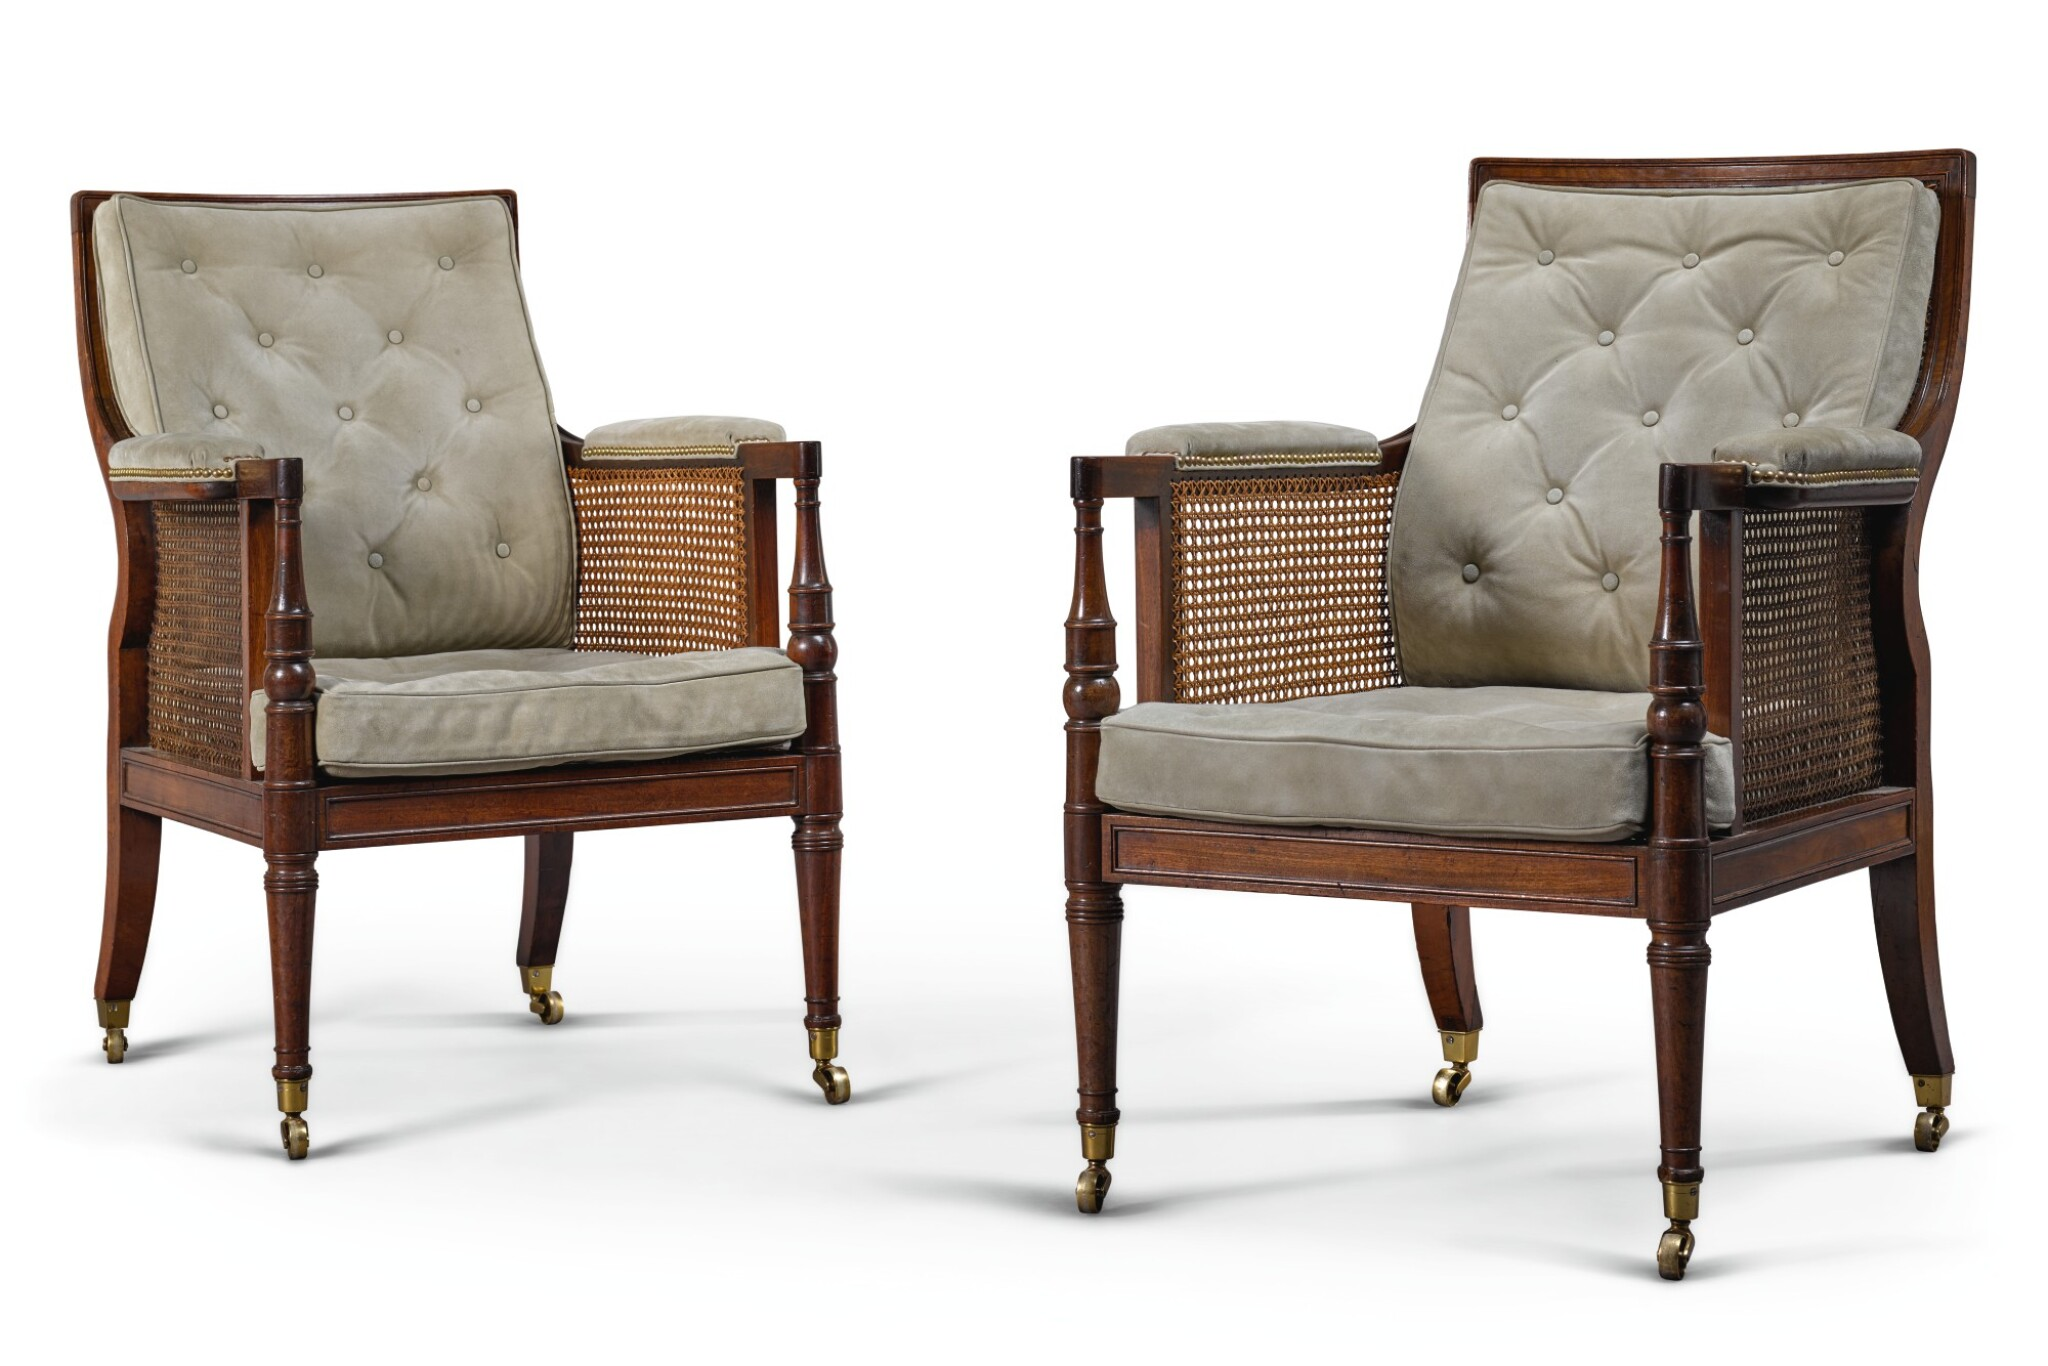 View full screen - View 1 of Lot 16. A PAIR OF REGENCY CANED MAHOGANY LIBRARY ARMCHAIRS, FIRST QUARTER 19TH CENTURY, ATTRIBUTED TO GILLOWS.